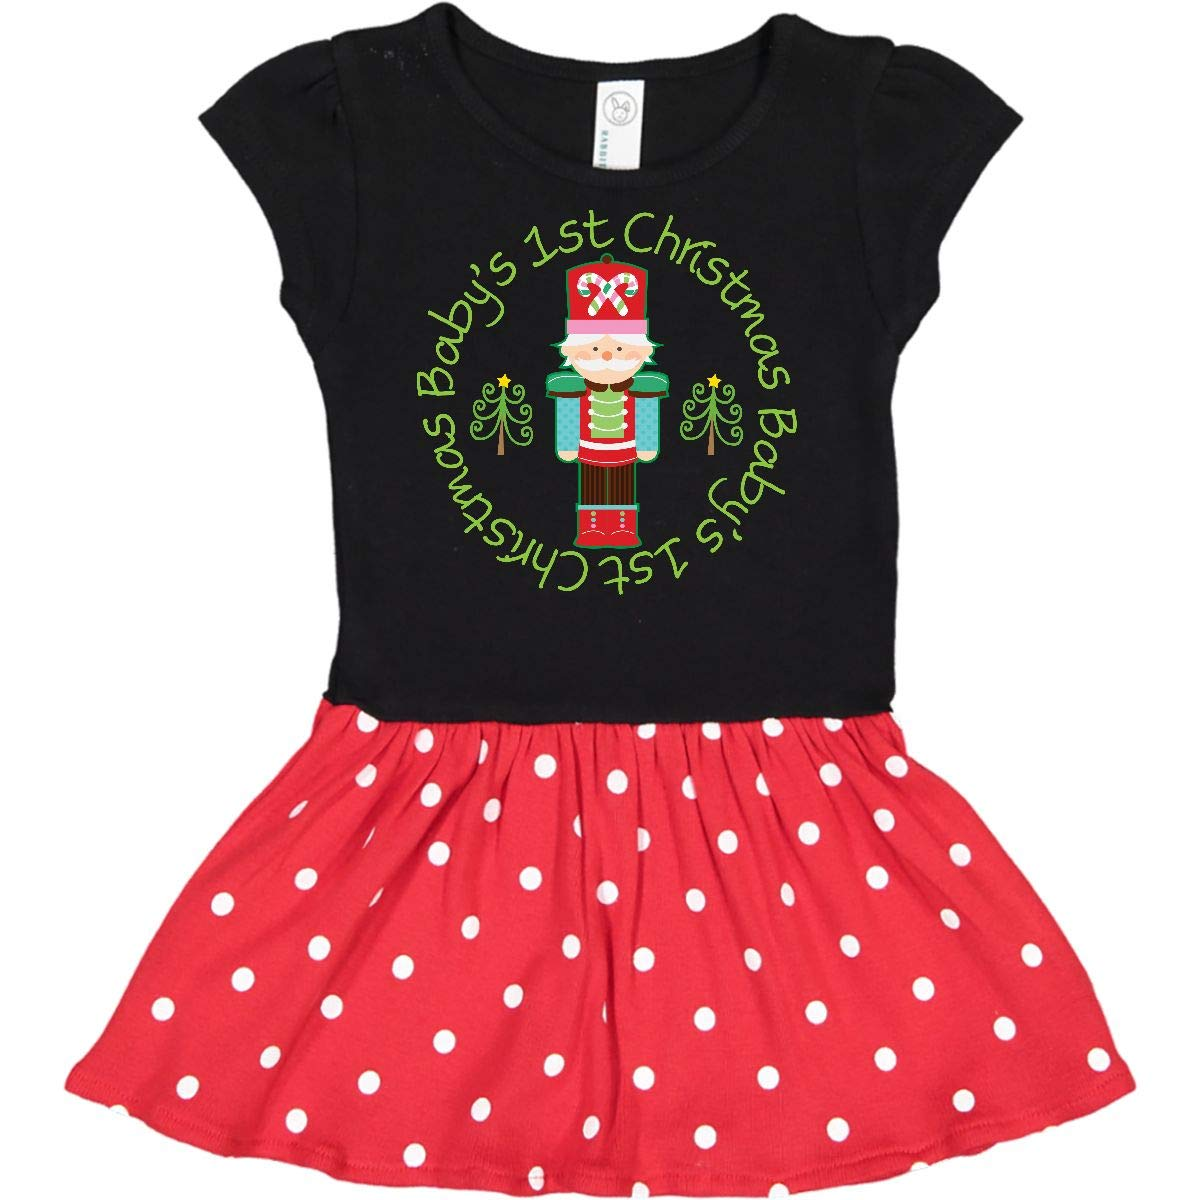 0f504260310d Amazon.com: inktastic - Nutcracker First Christmas Baby Gift Toddler Dress  204c5: Clothing